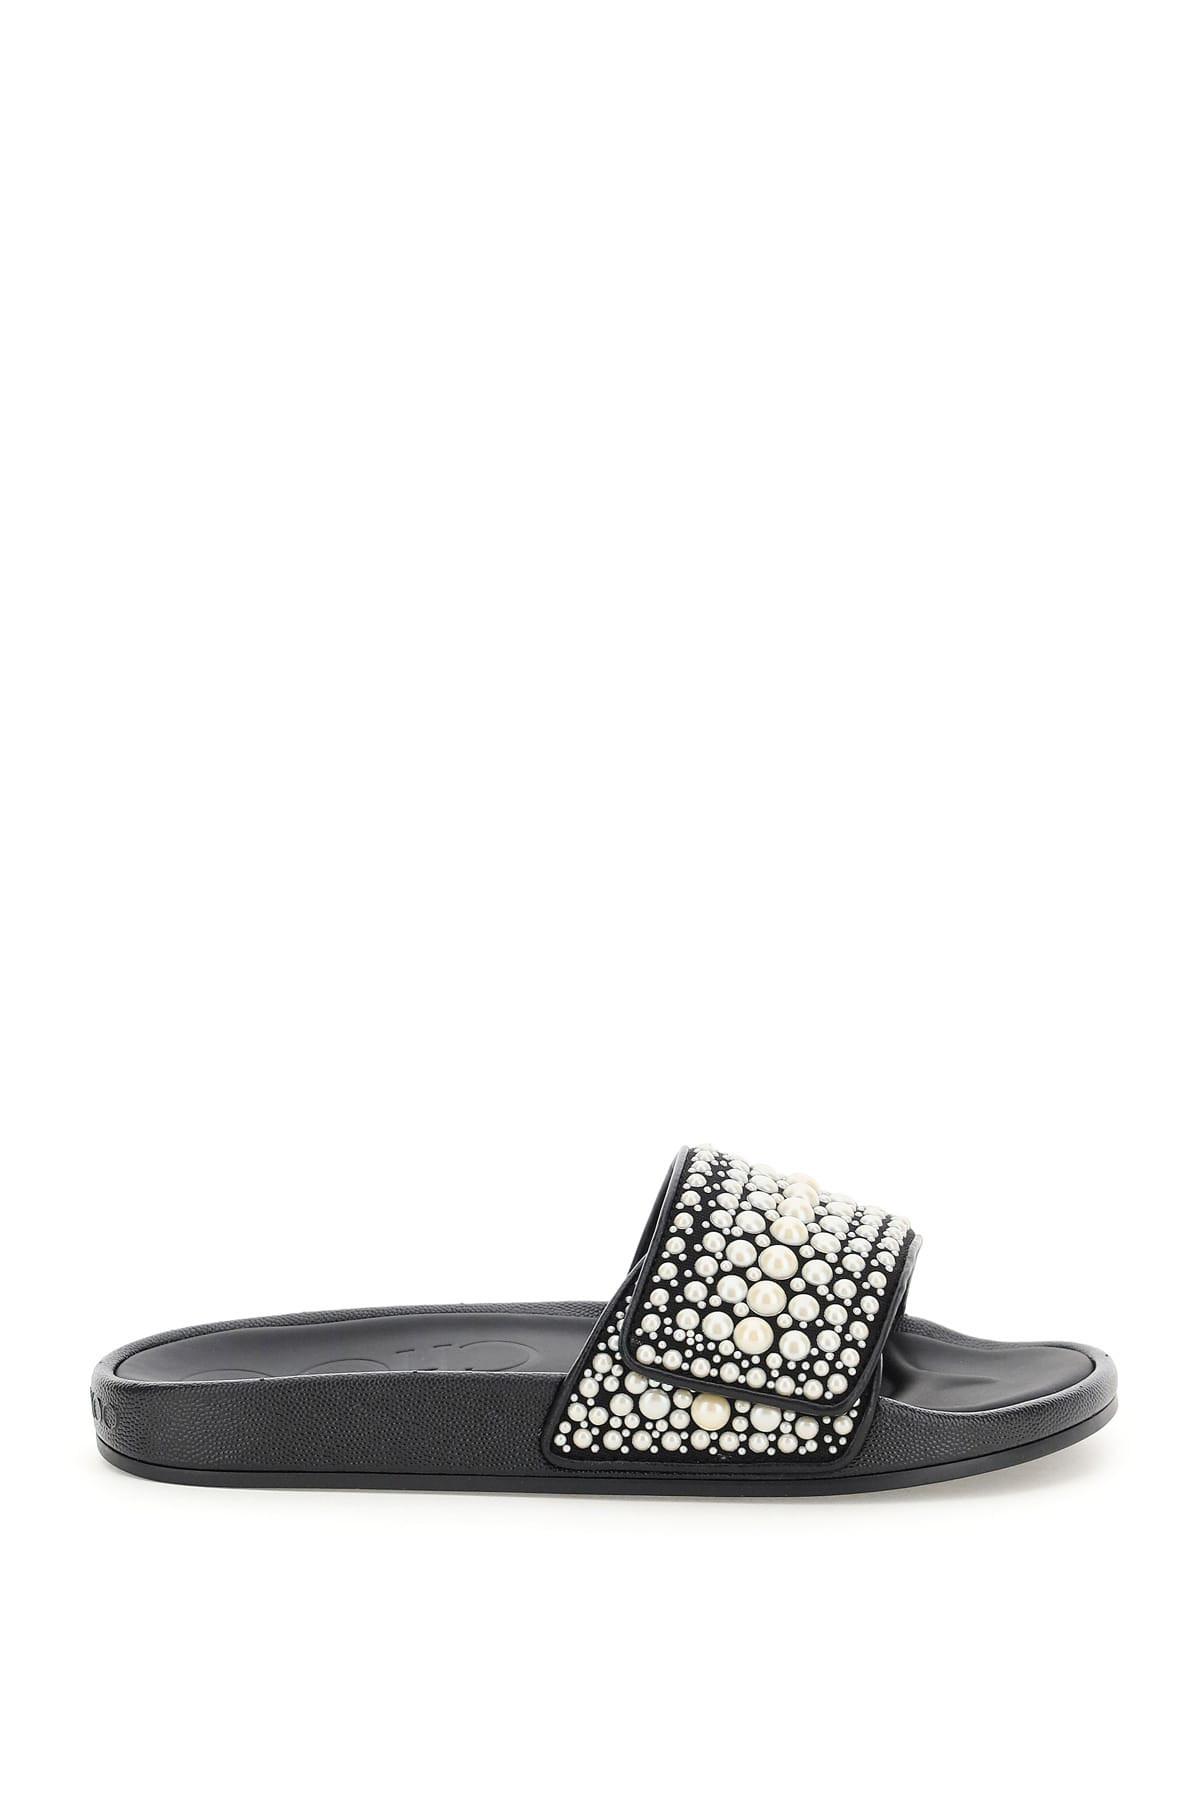 Buy Jimmy Choo Rubber Slides With Pearls online, shop Jimmy Choo shoes with free shipping